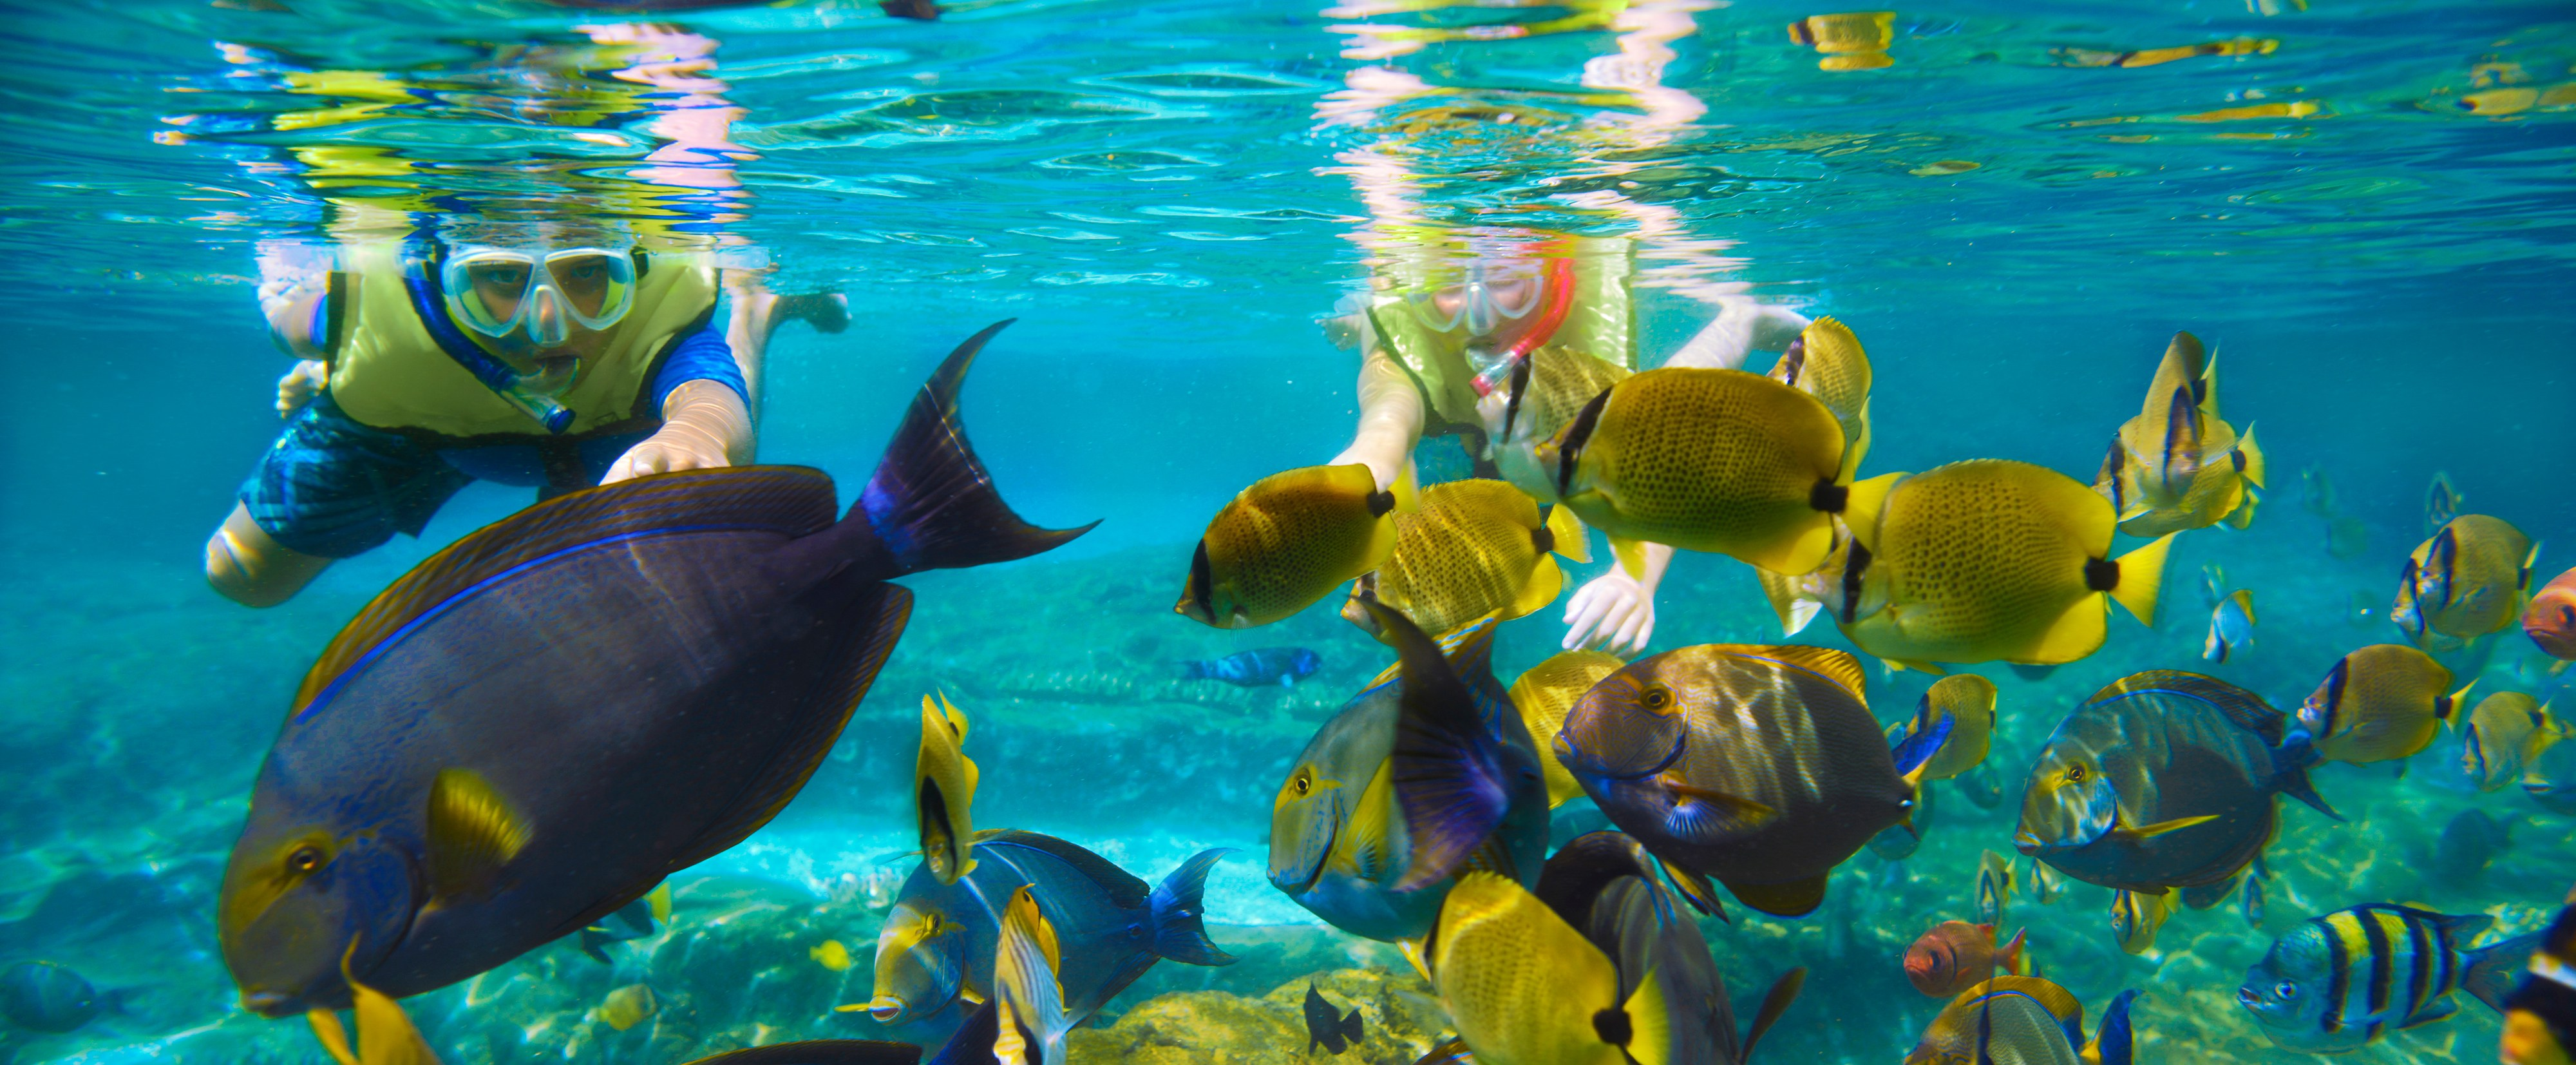 Snorkeling (Source:disney.com)